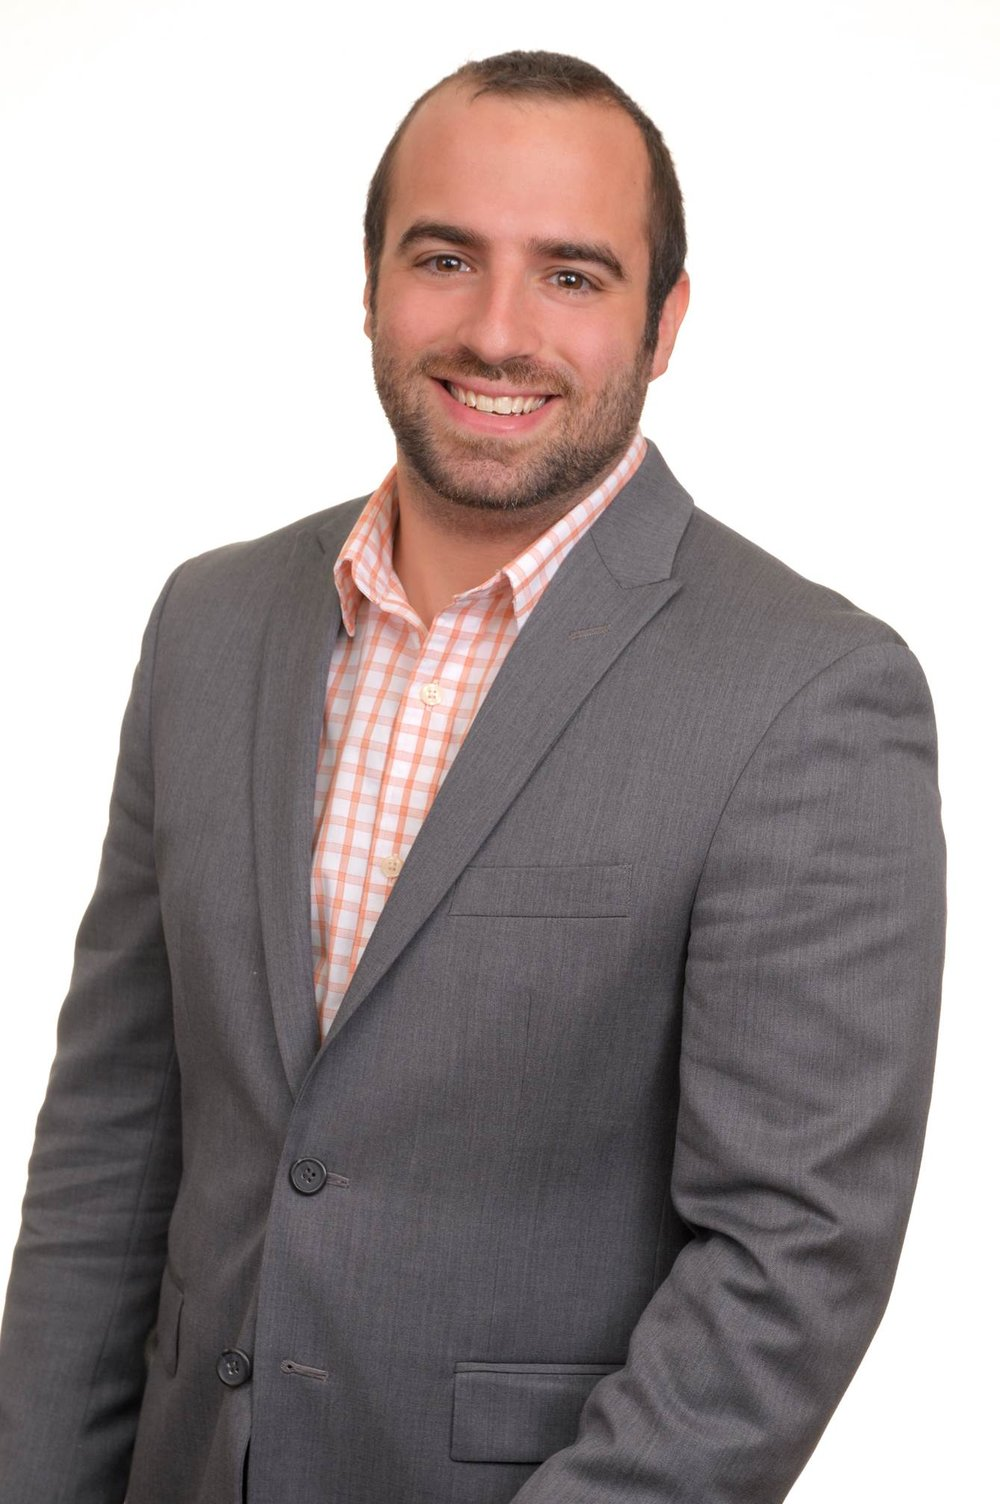 Nathan Johnson is a Real Estate Agent based in Croton on Hudson NY.